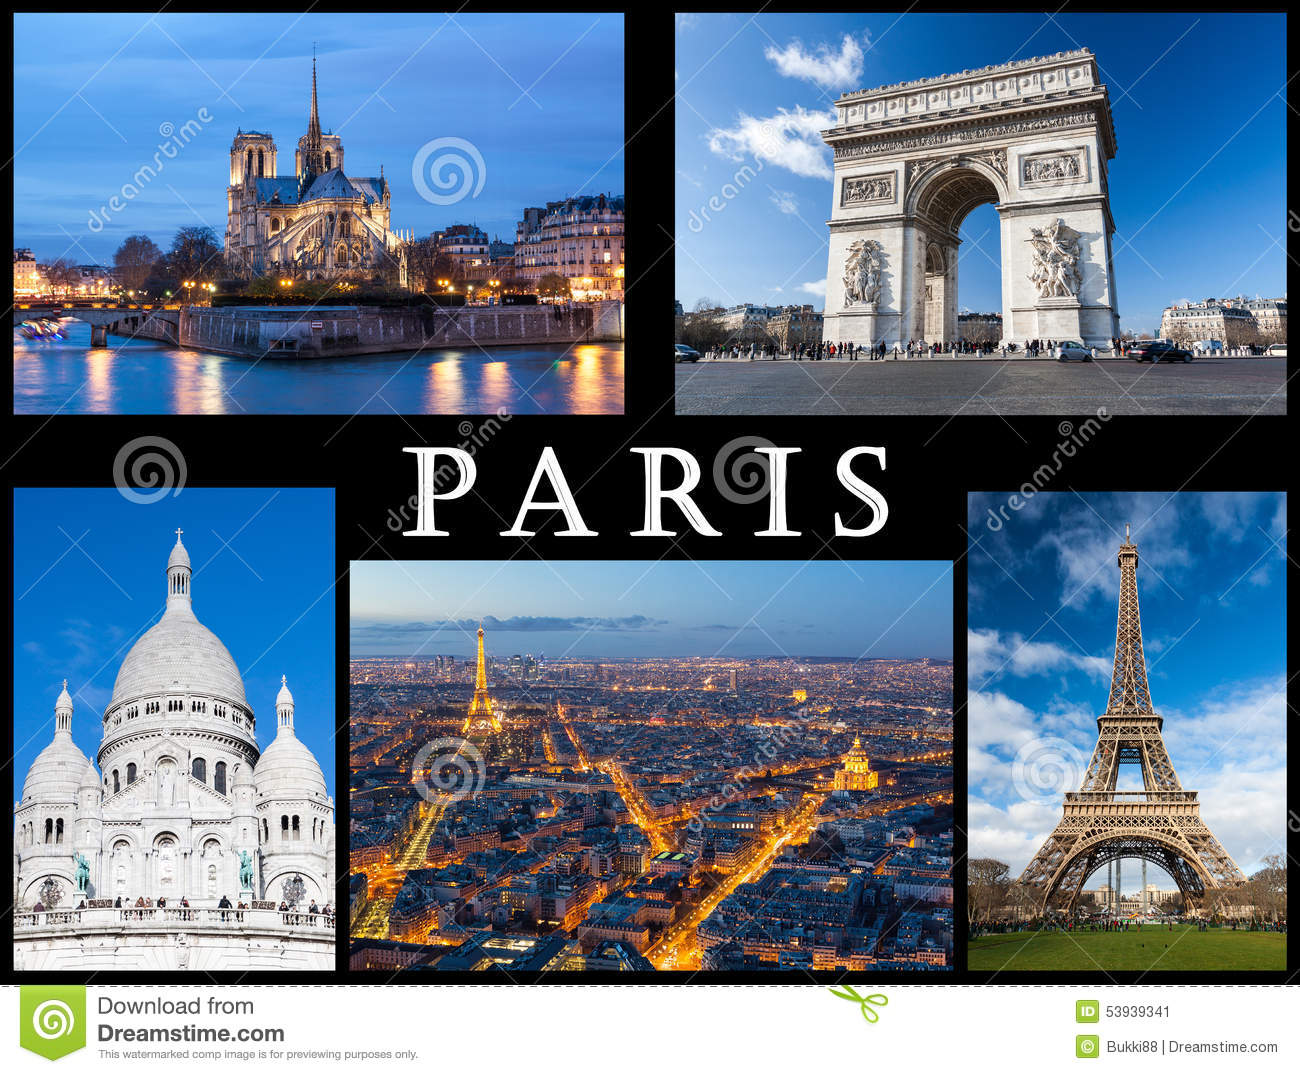 carte postale de paris notre dame tour eiffel basilique de coeur sacr arc de triumph et un. Black Bedroom Furniture Sets. Home Design Ideas